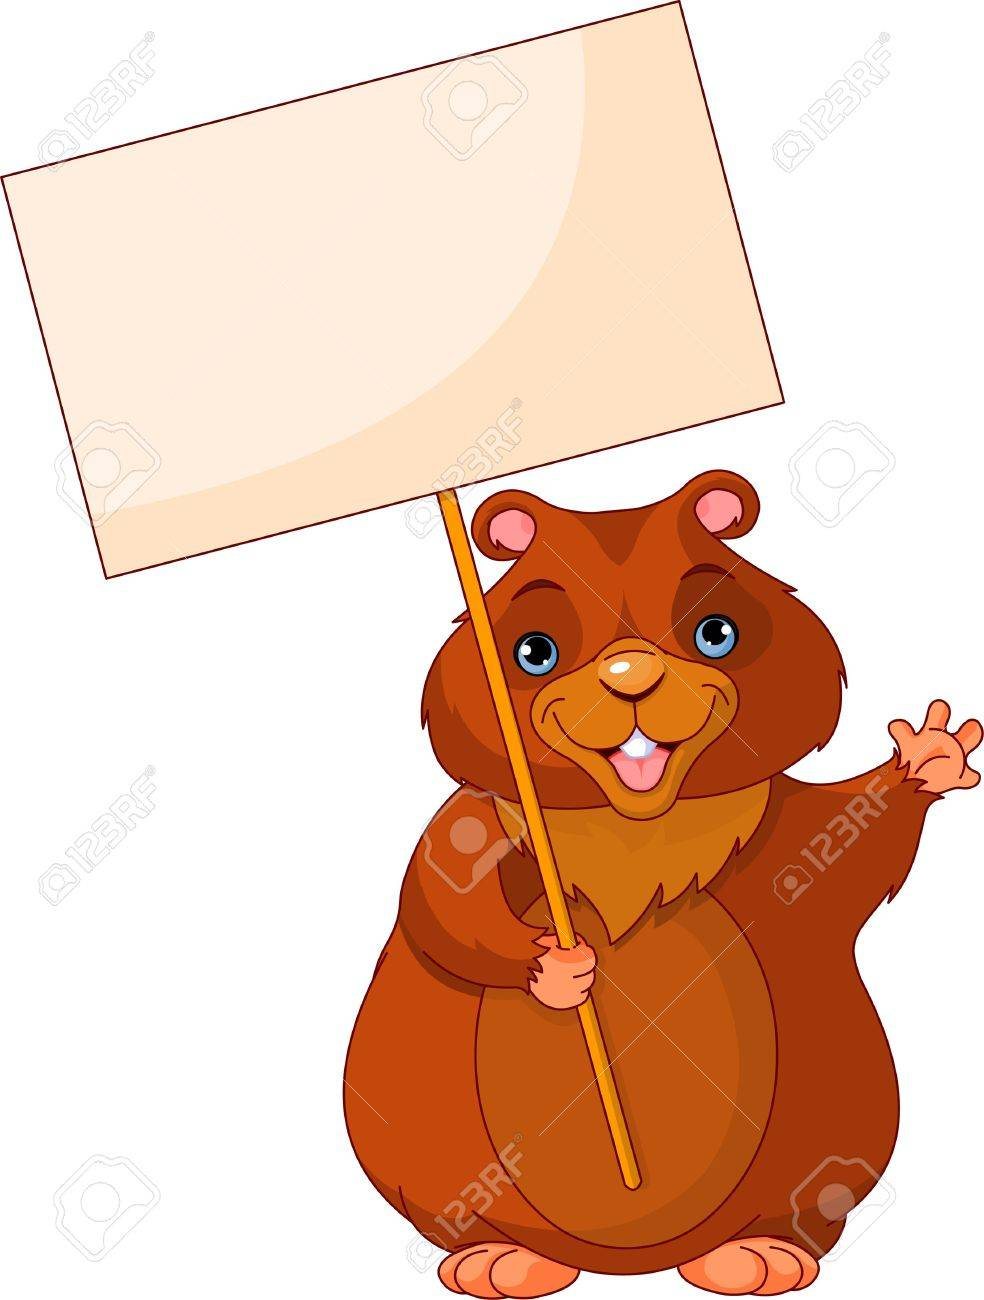 Funny groundhog clipart 7 » Clipart Station.